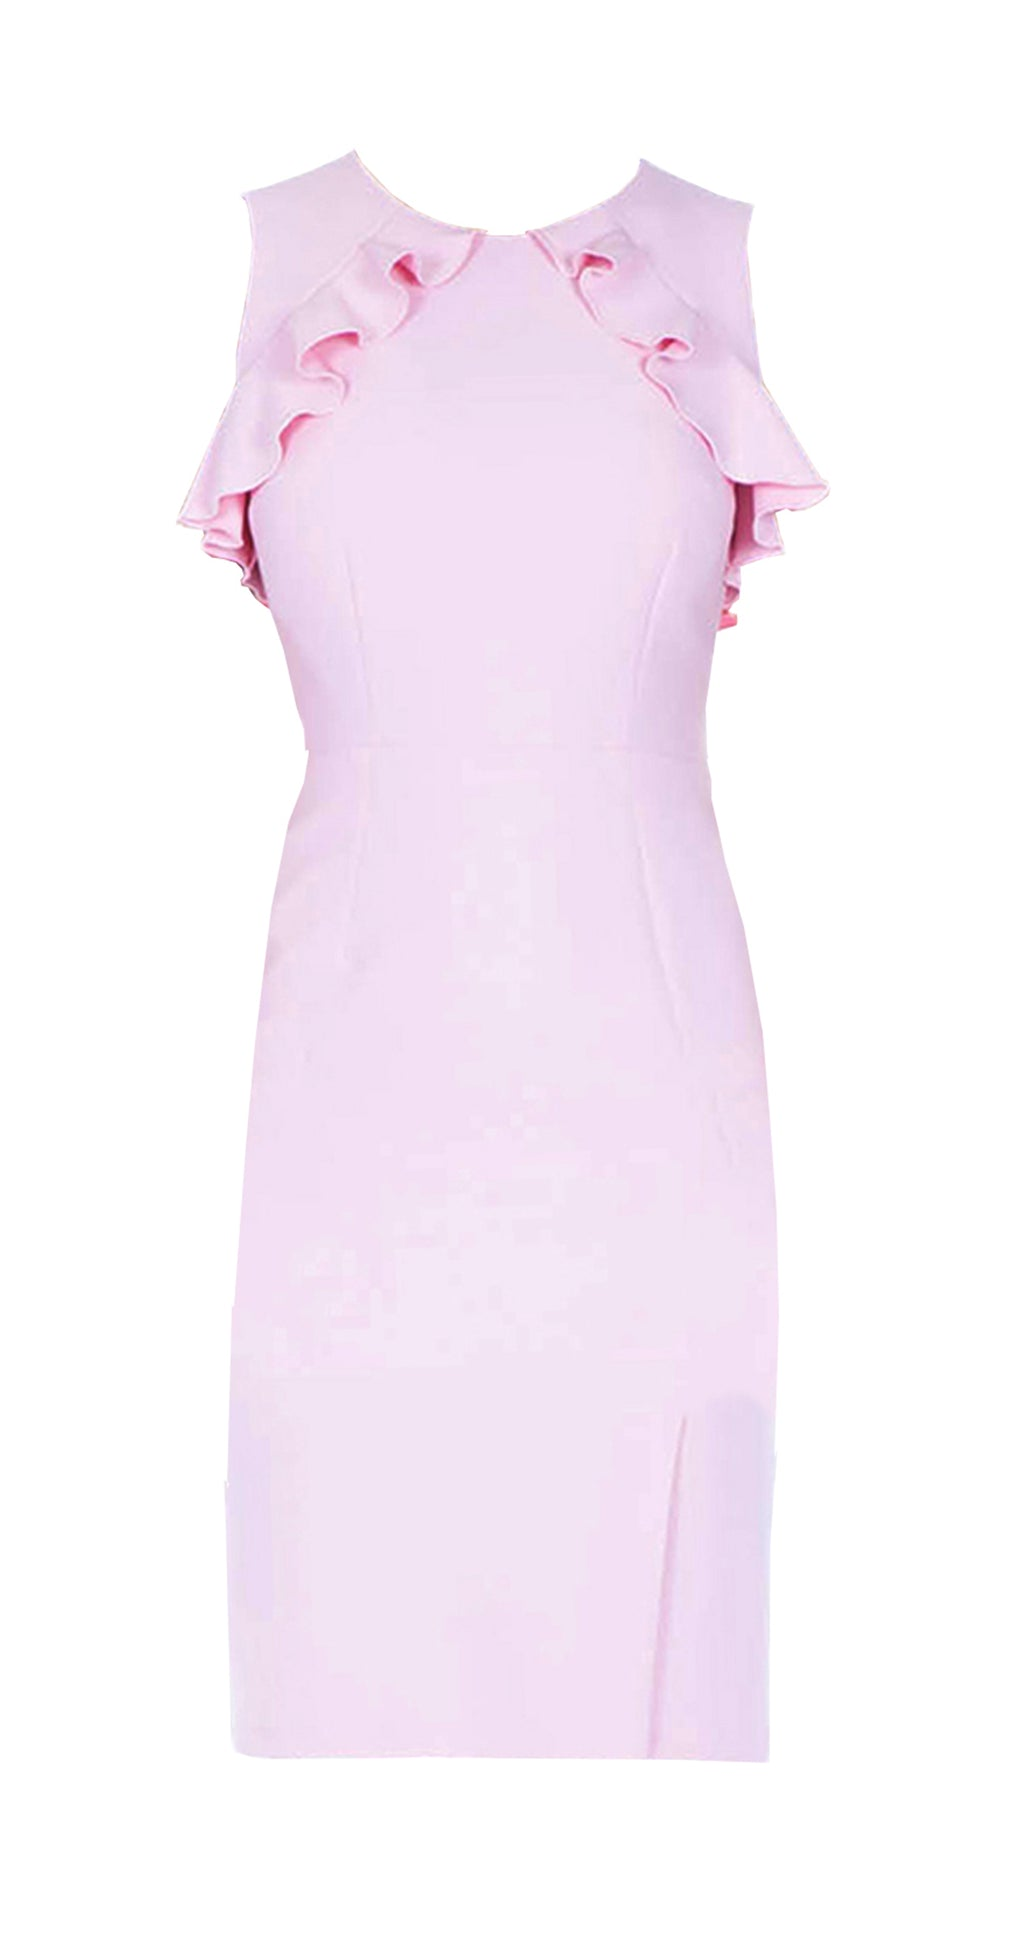 Lena Dress DRC241 Pale Pink